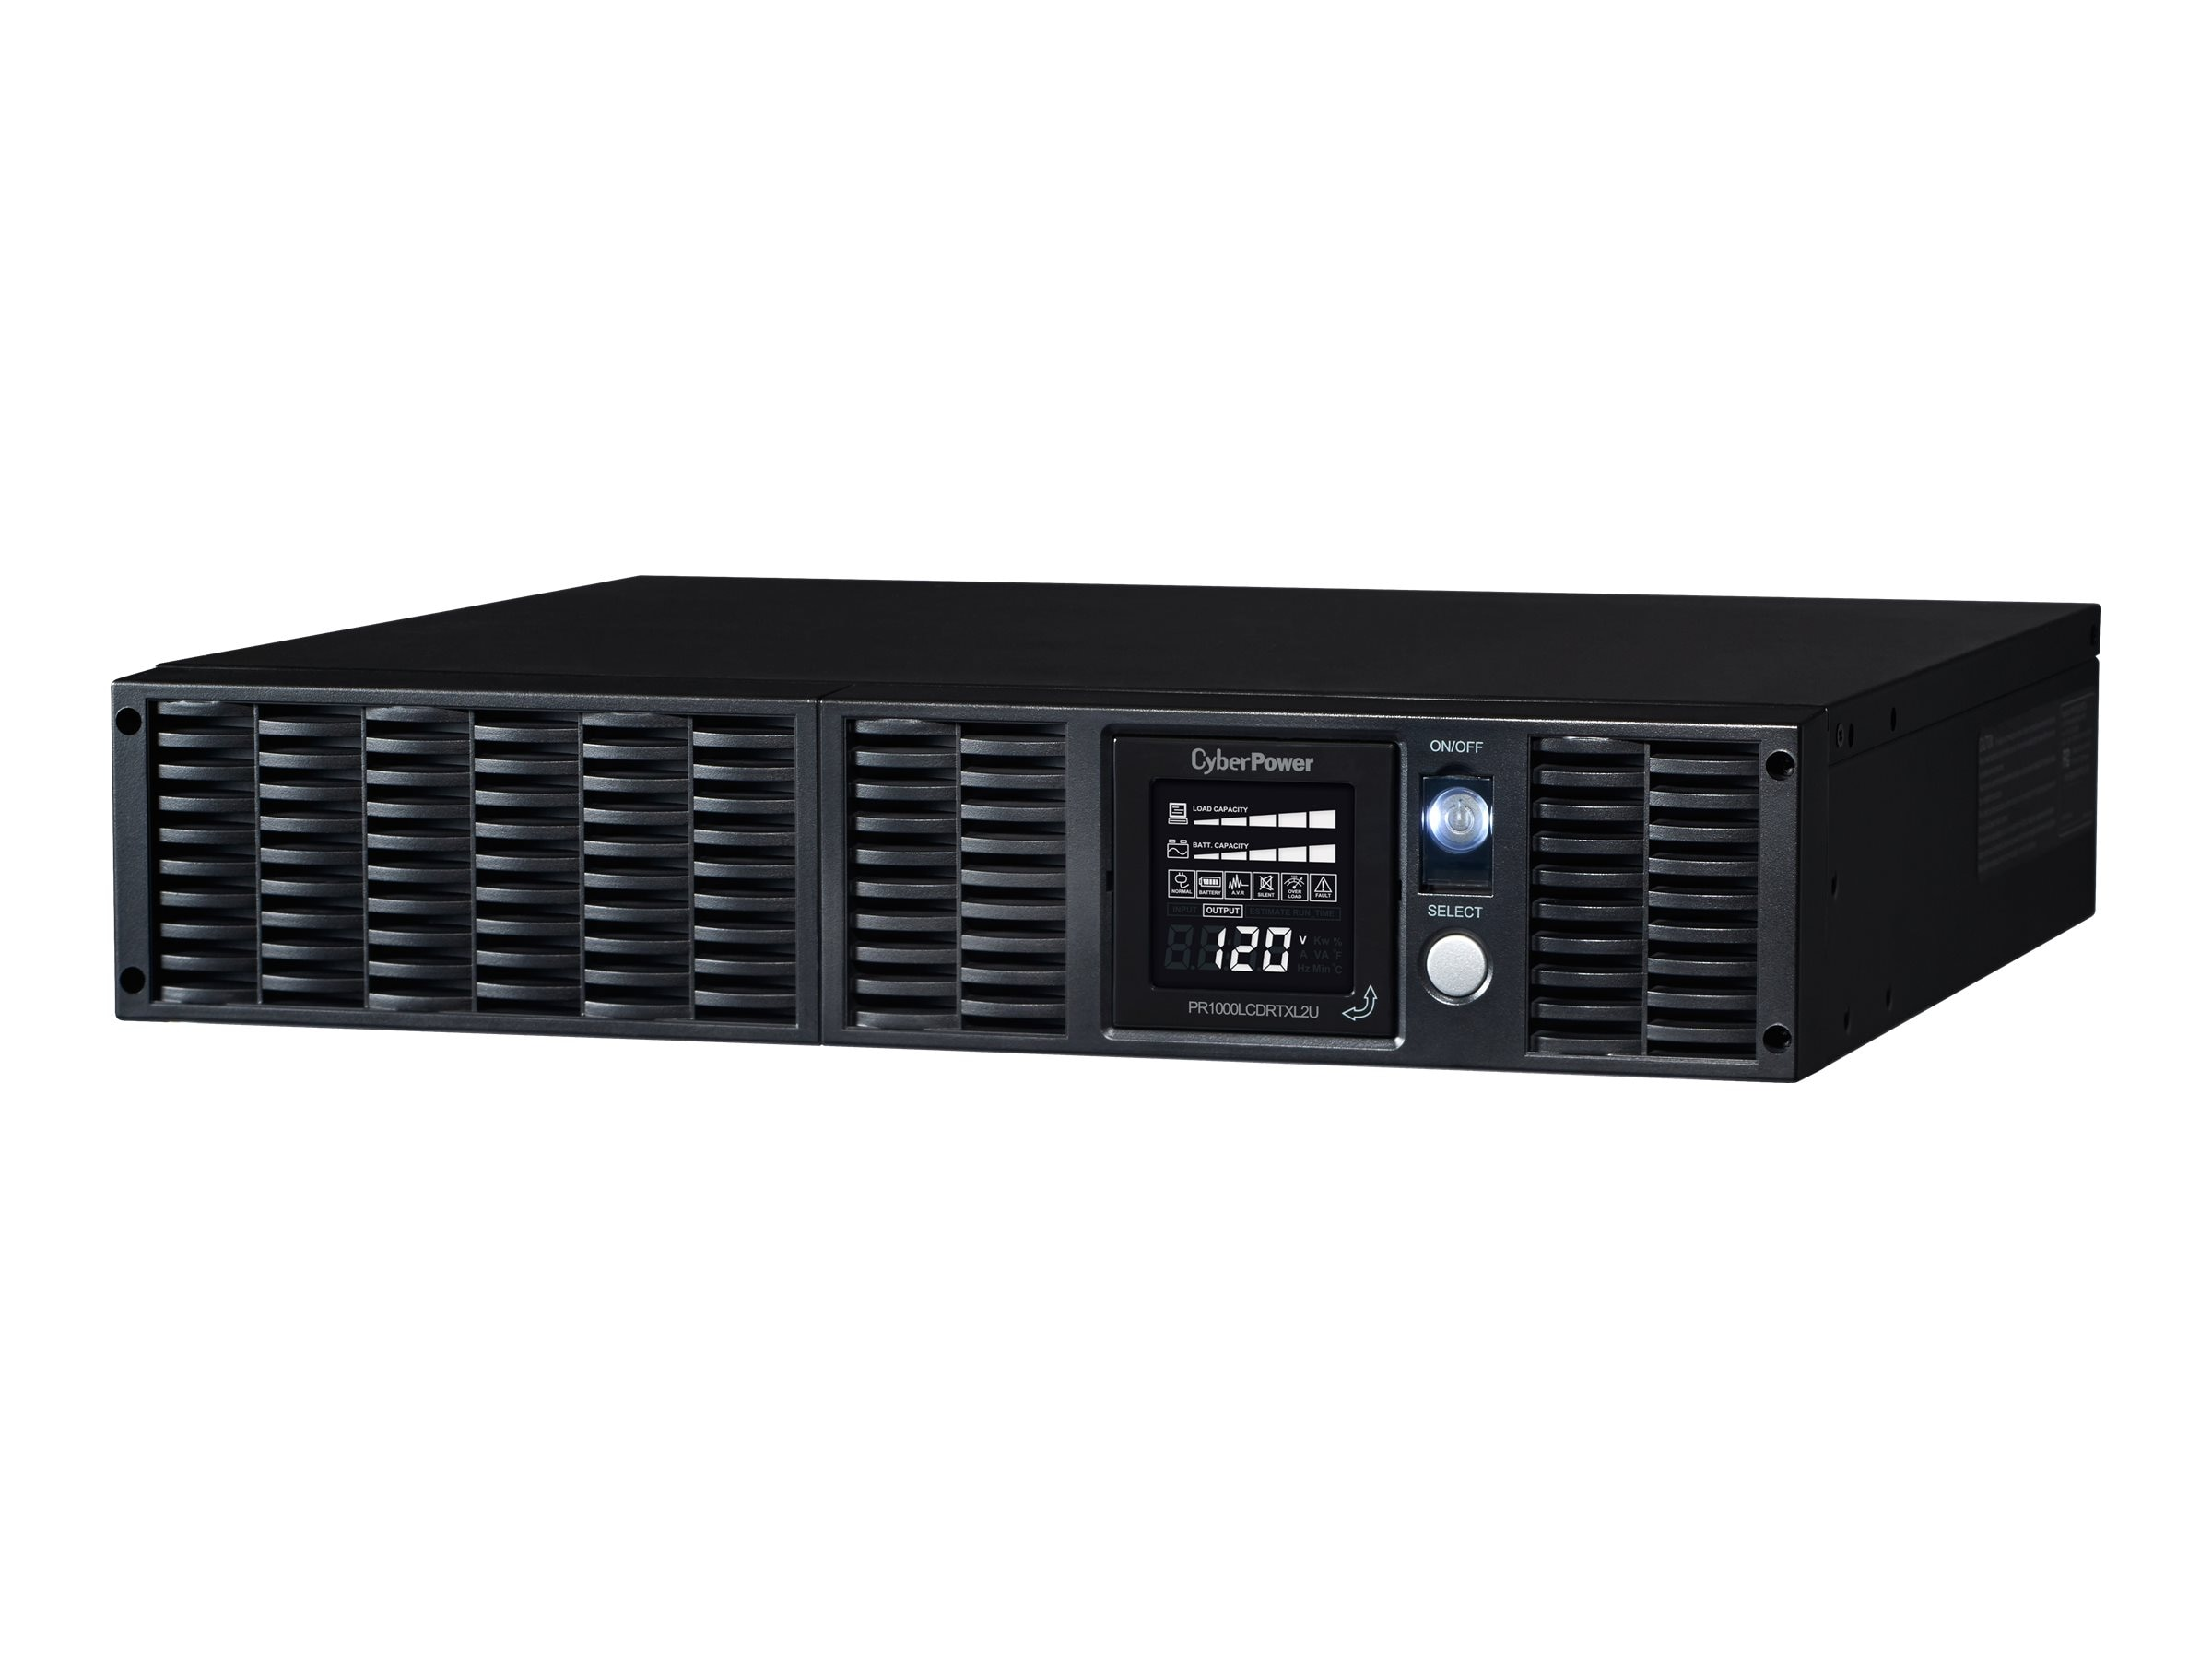 CyberPower 1000VA 700W Smart App Sinewave LCD XL UPS 2U RM Tower AVR 8 Outlets, PR1000LCDRTXL2U, 8875160, Battery Backup/UPS